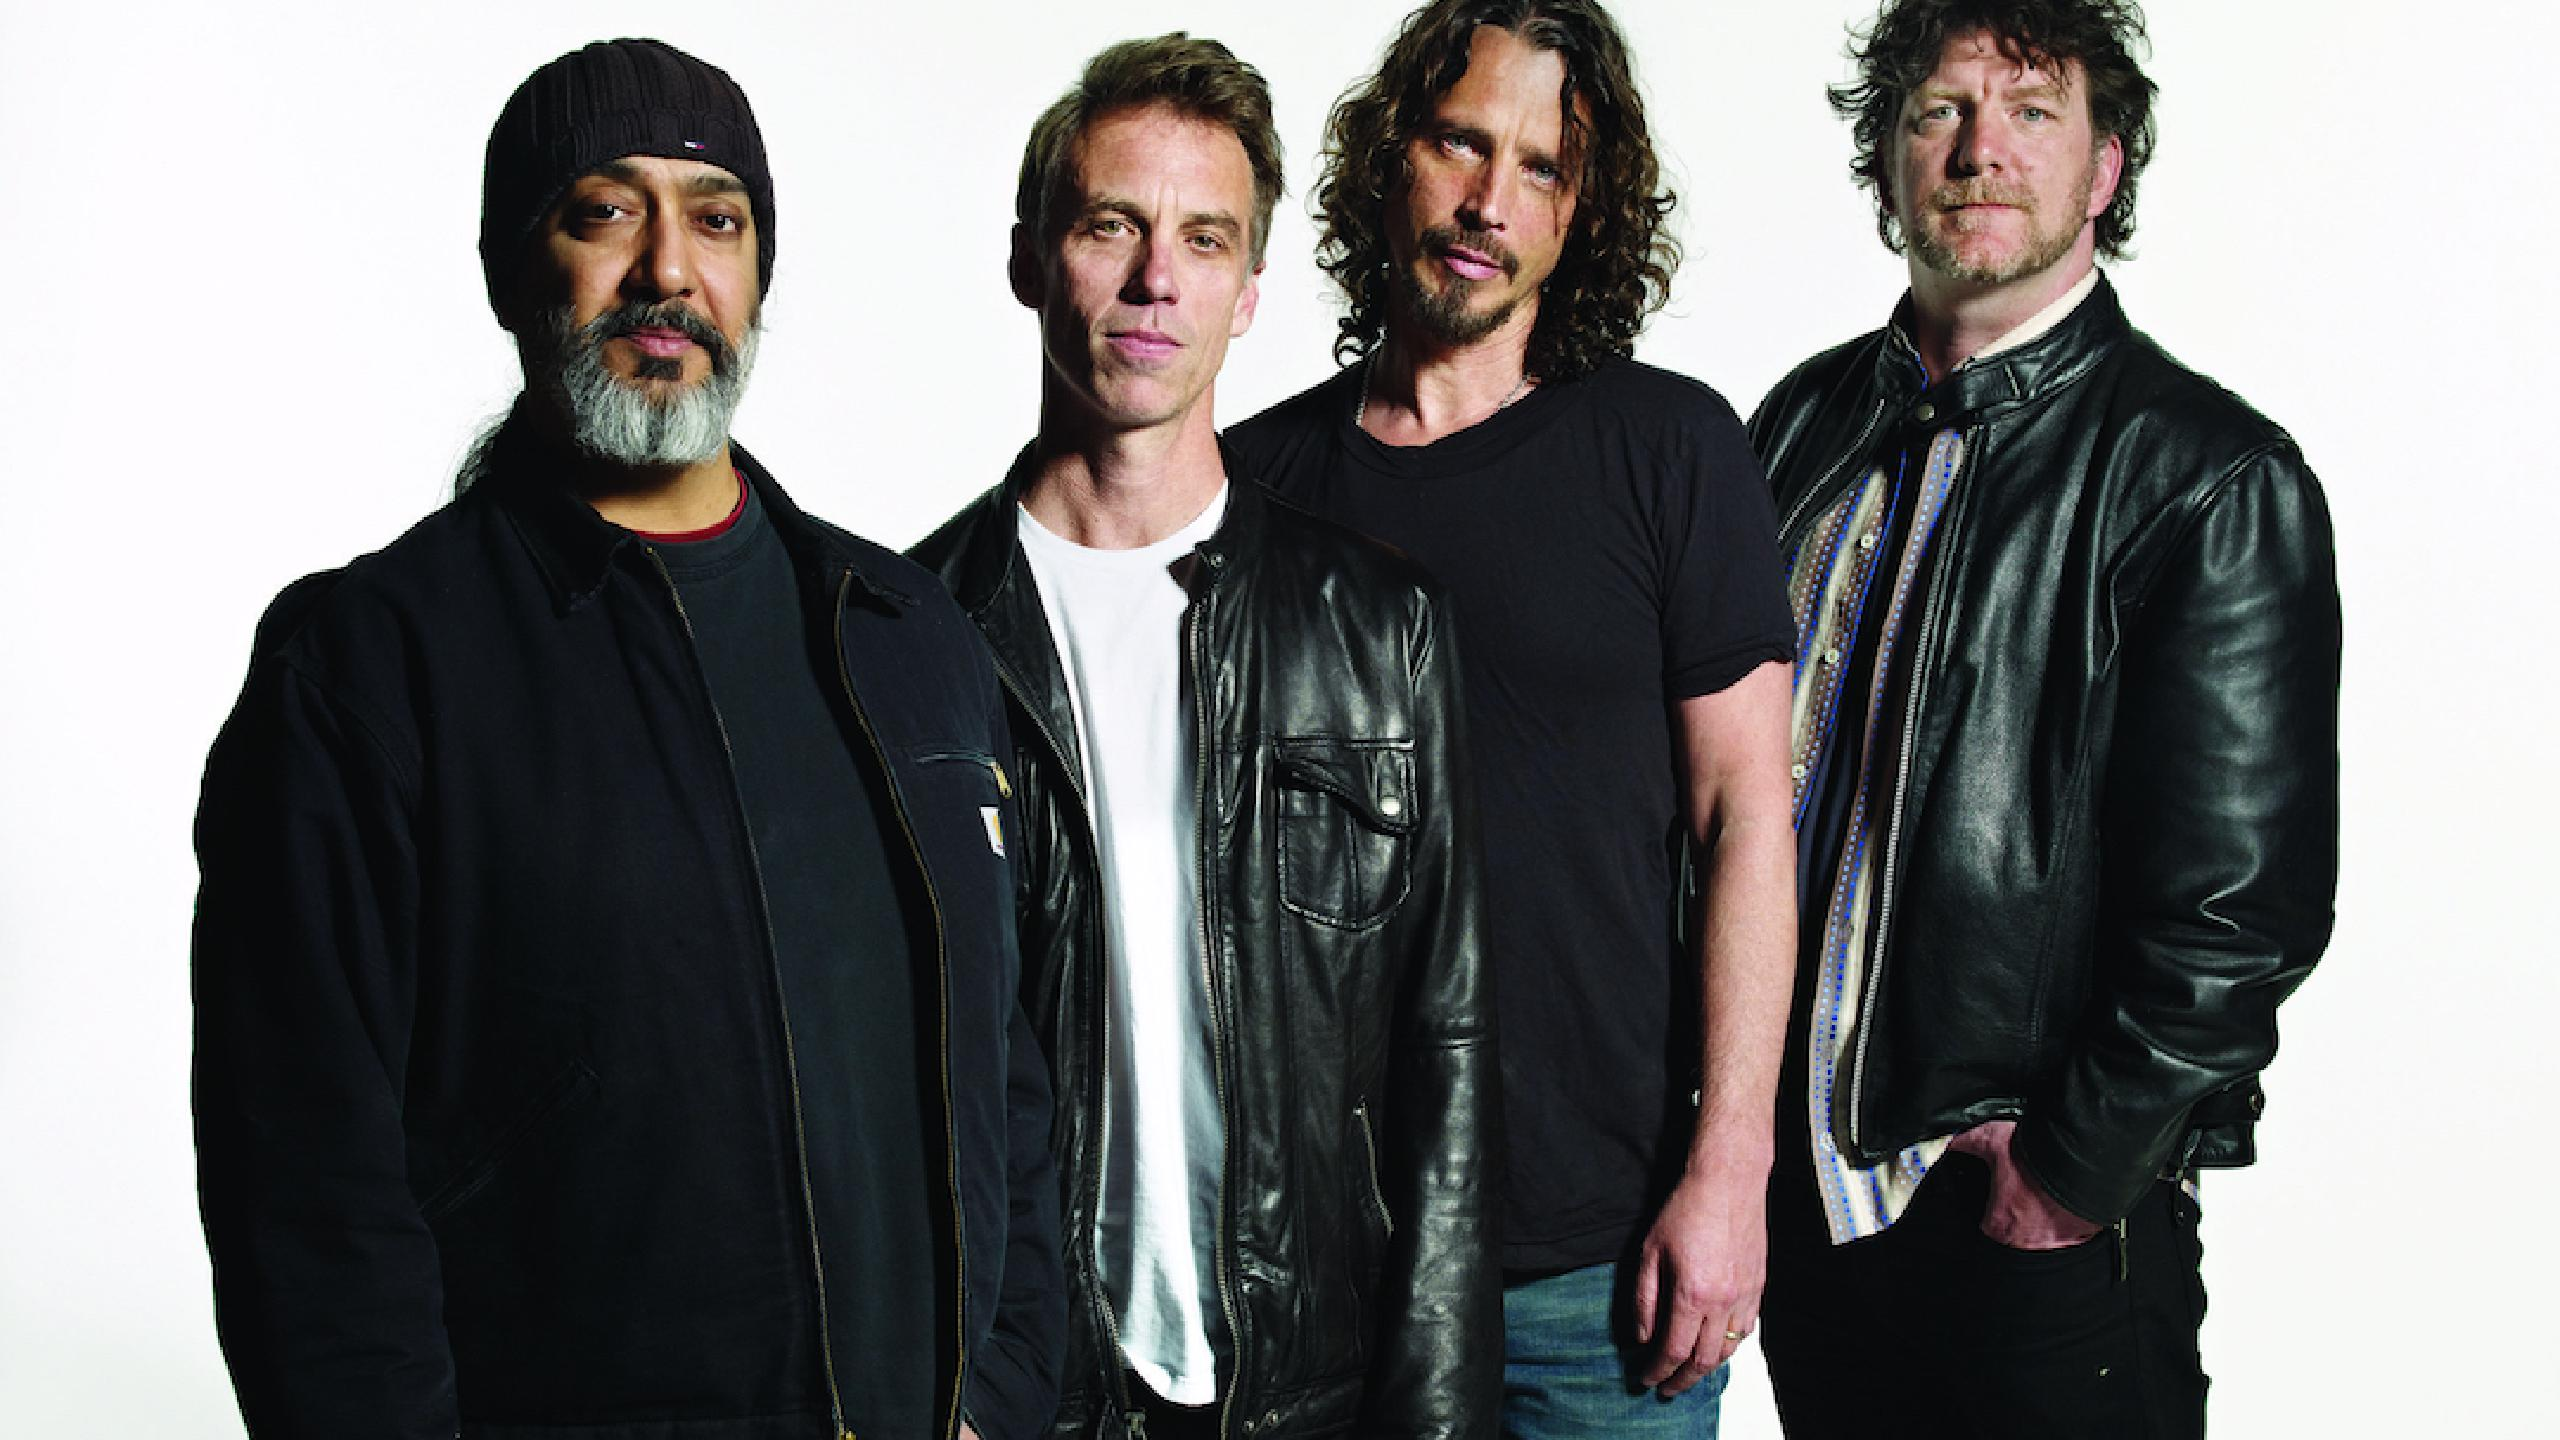 Soundgarden Tour Dates 2020 Soundgarden tour dates 2019 2020. Soundgarden tickets and concerts